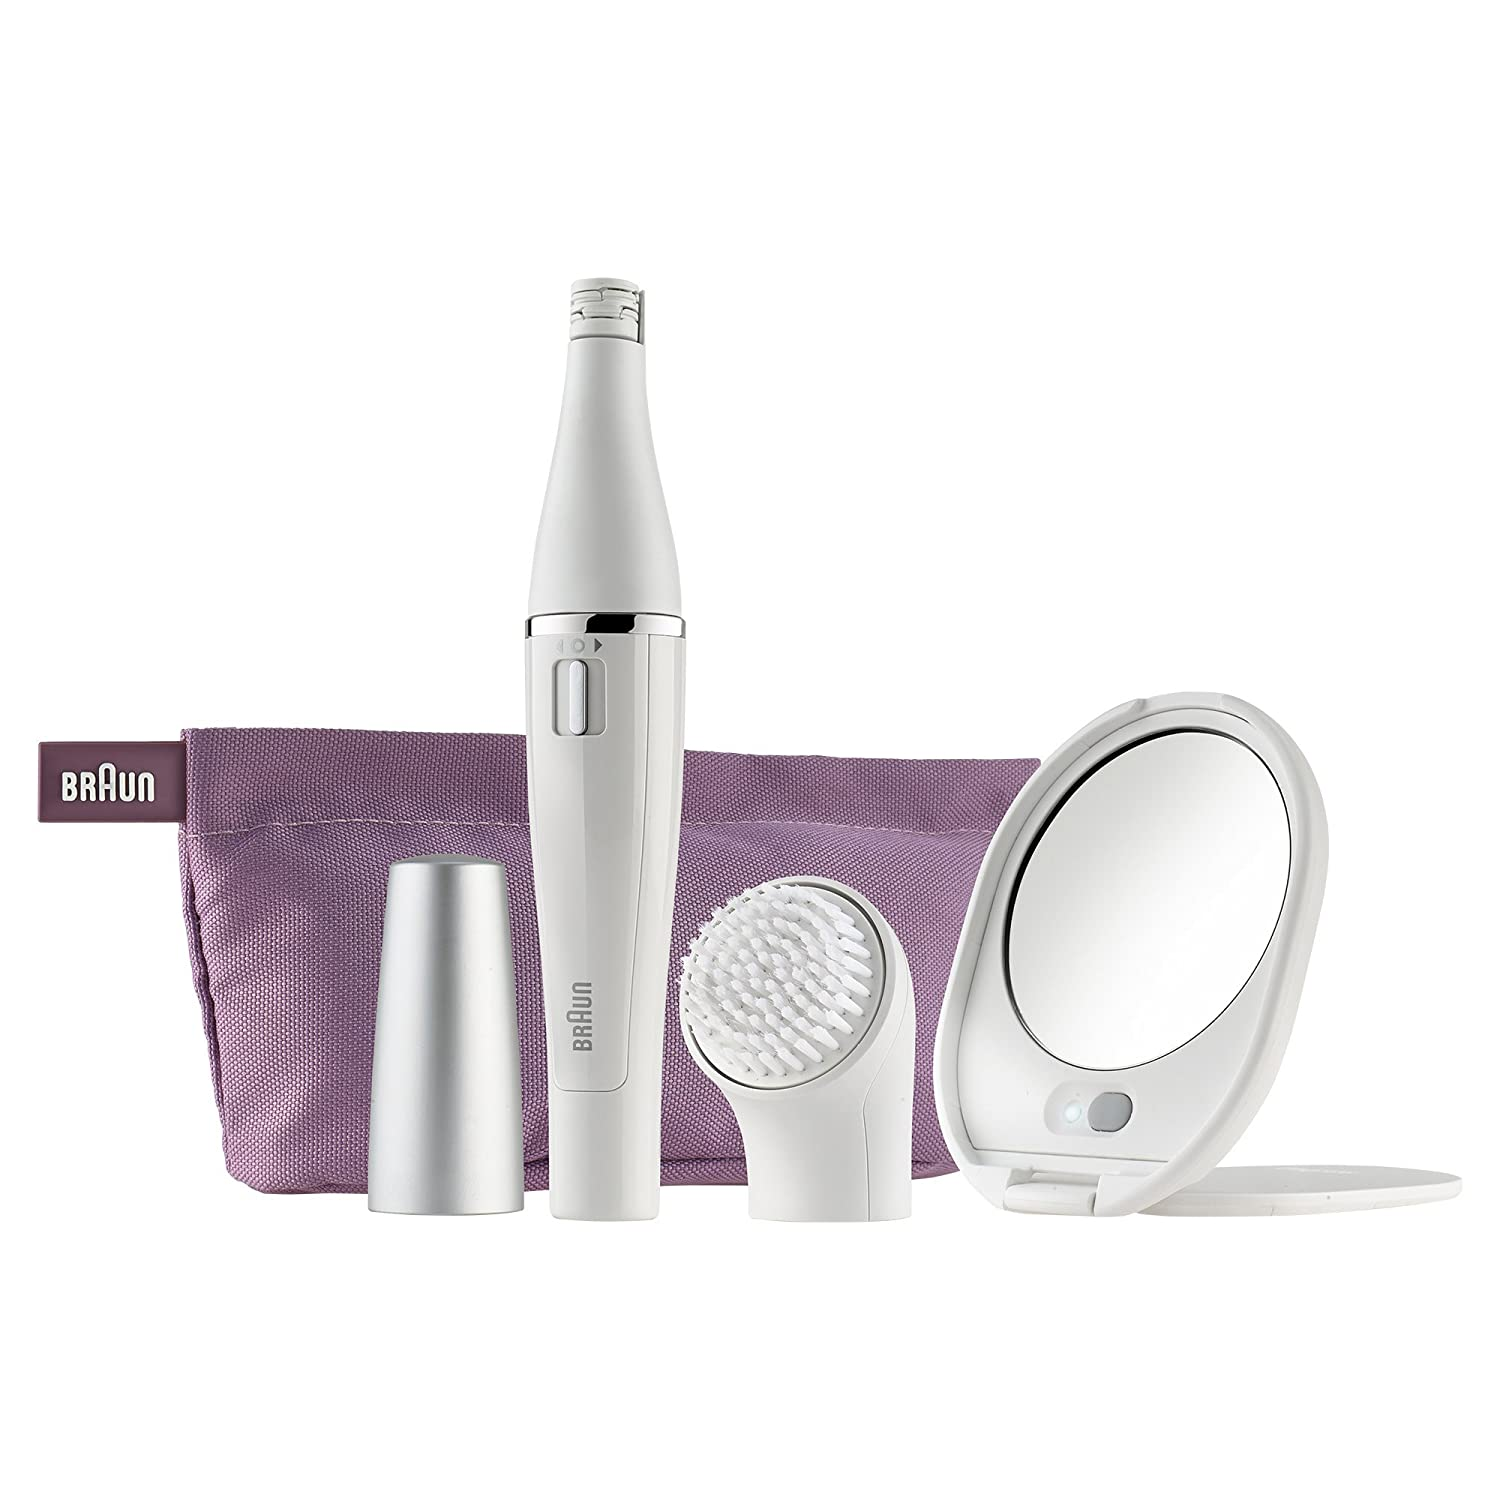 Braun Face 830 Facial Epilator and Facial Cleansing Brush Including Mirror and Beauty Pouch Procter & Gamble 4210201097396